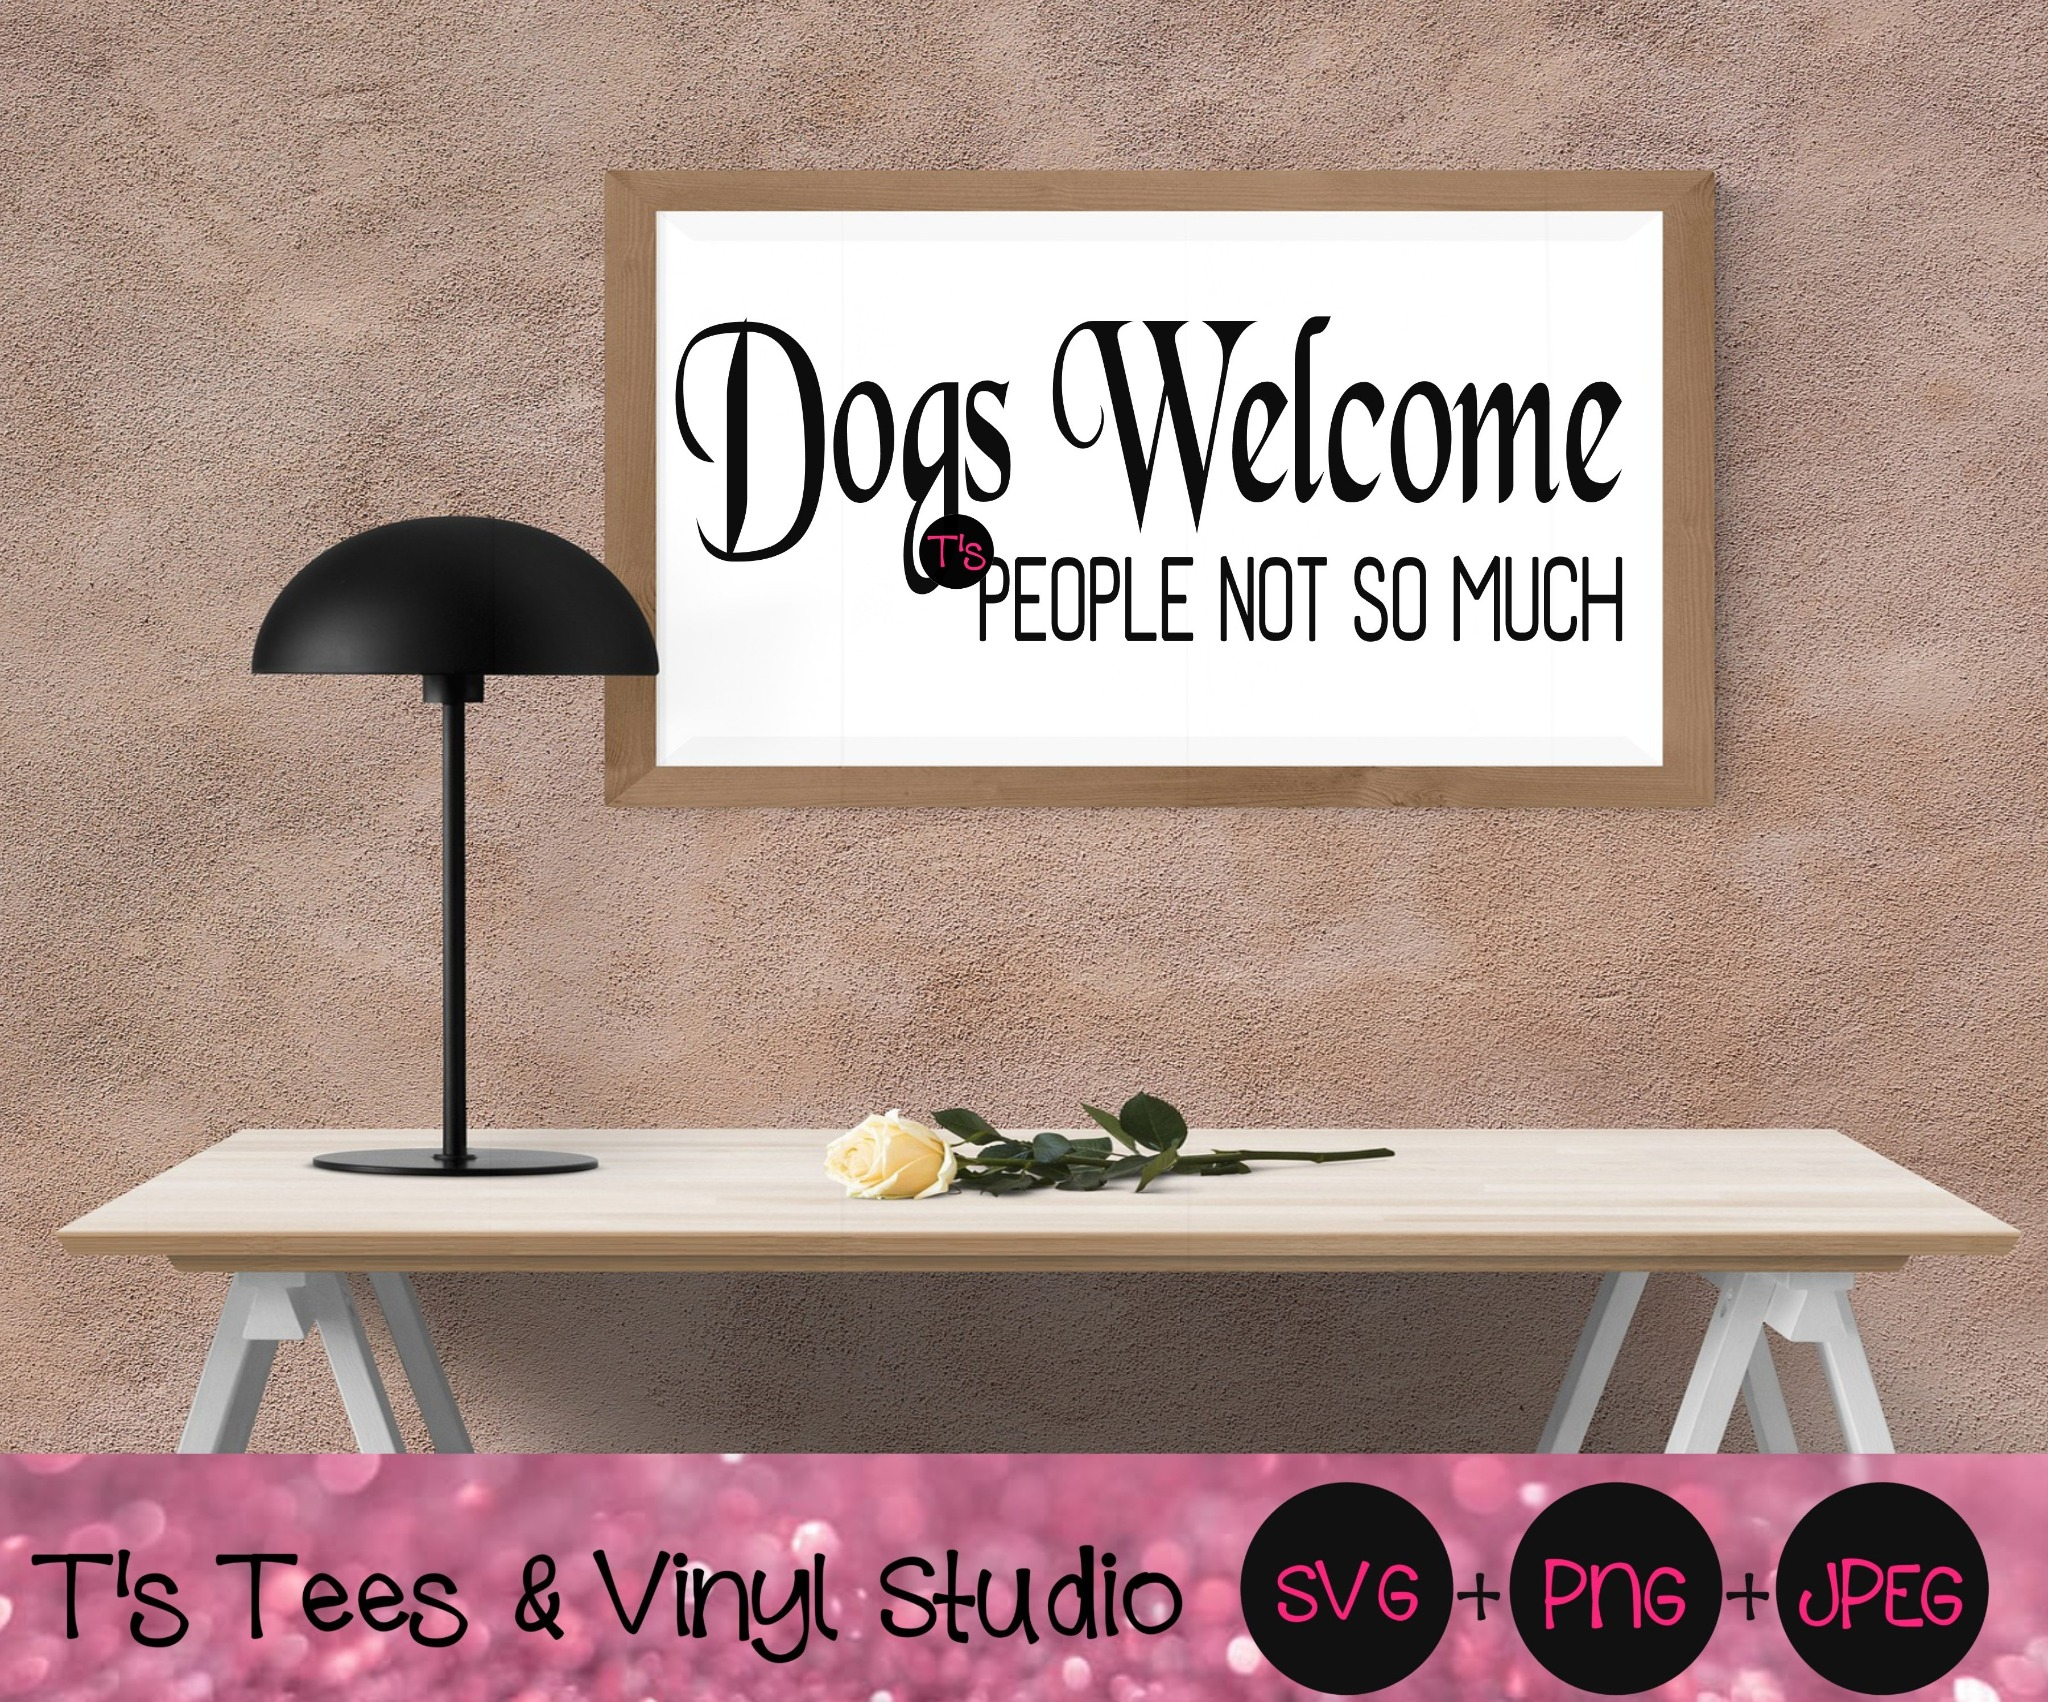 Dogs Svg, Dogs Welcome Svg, Dogs Welcome People Not So Much Svg, Love Dogs Svg, Dogs Allowed Svg